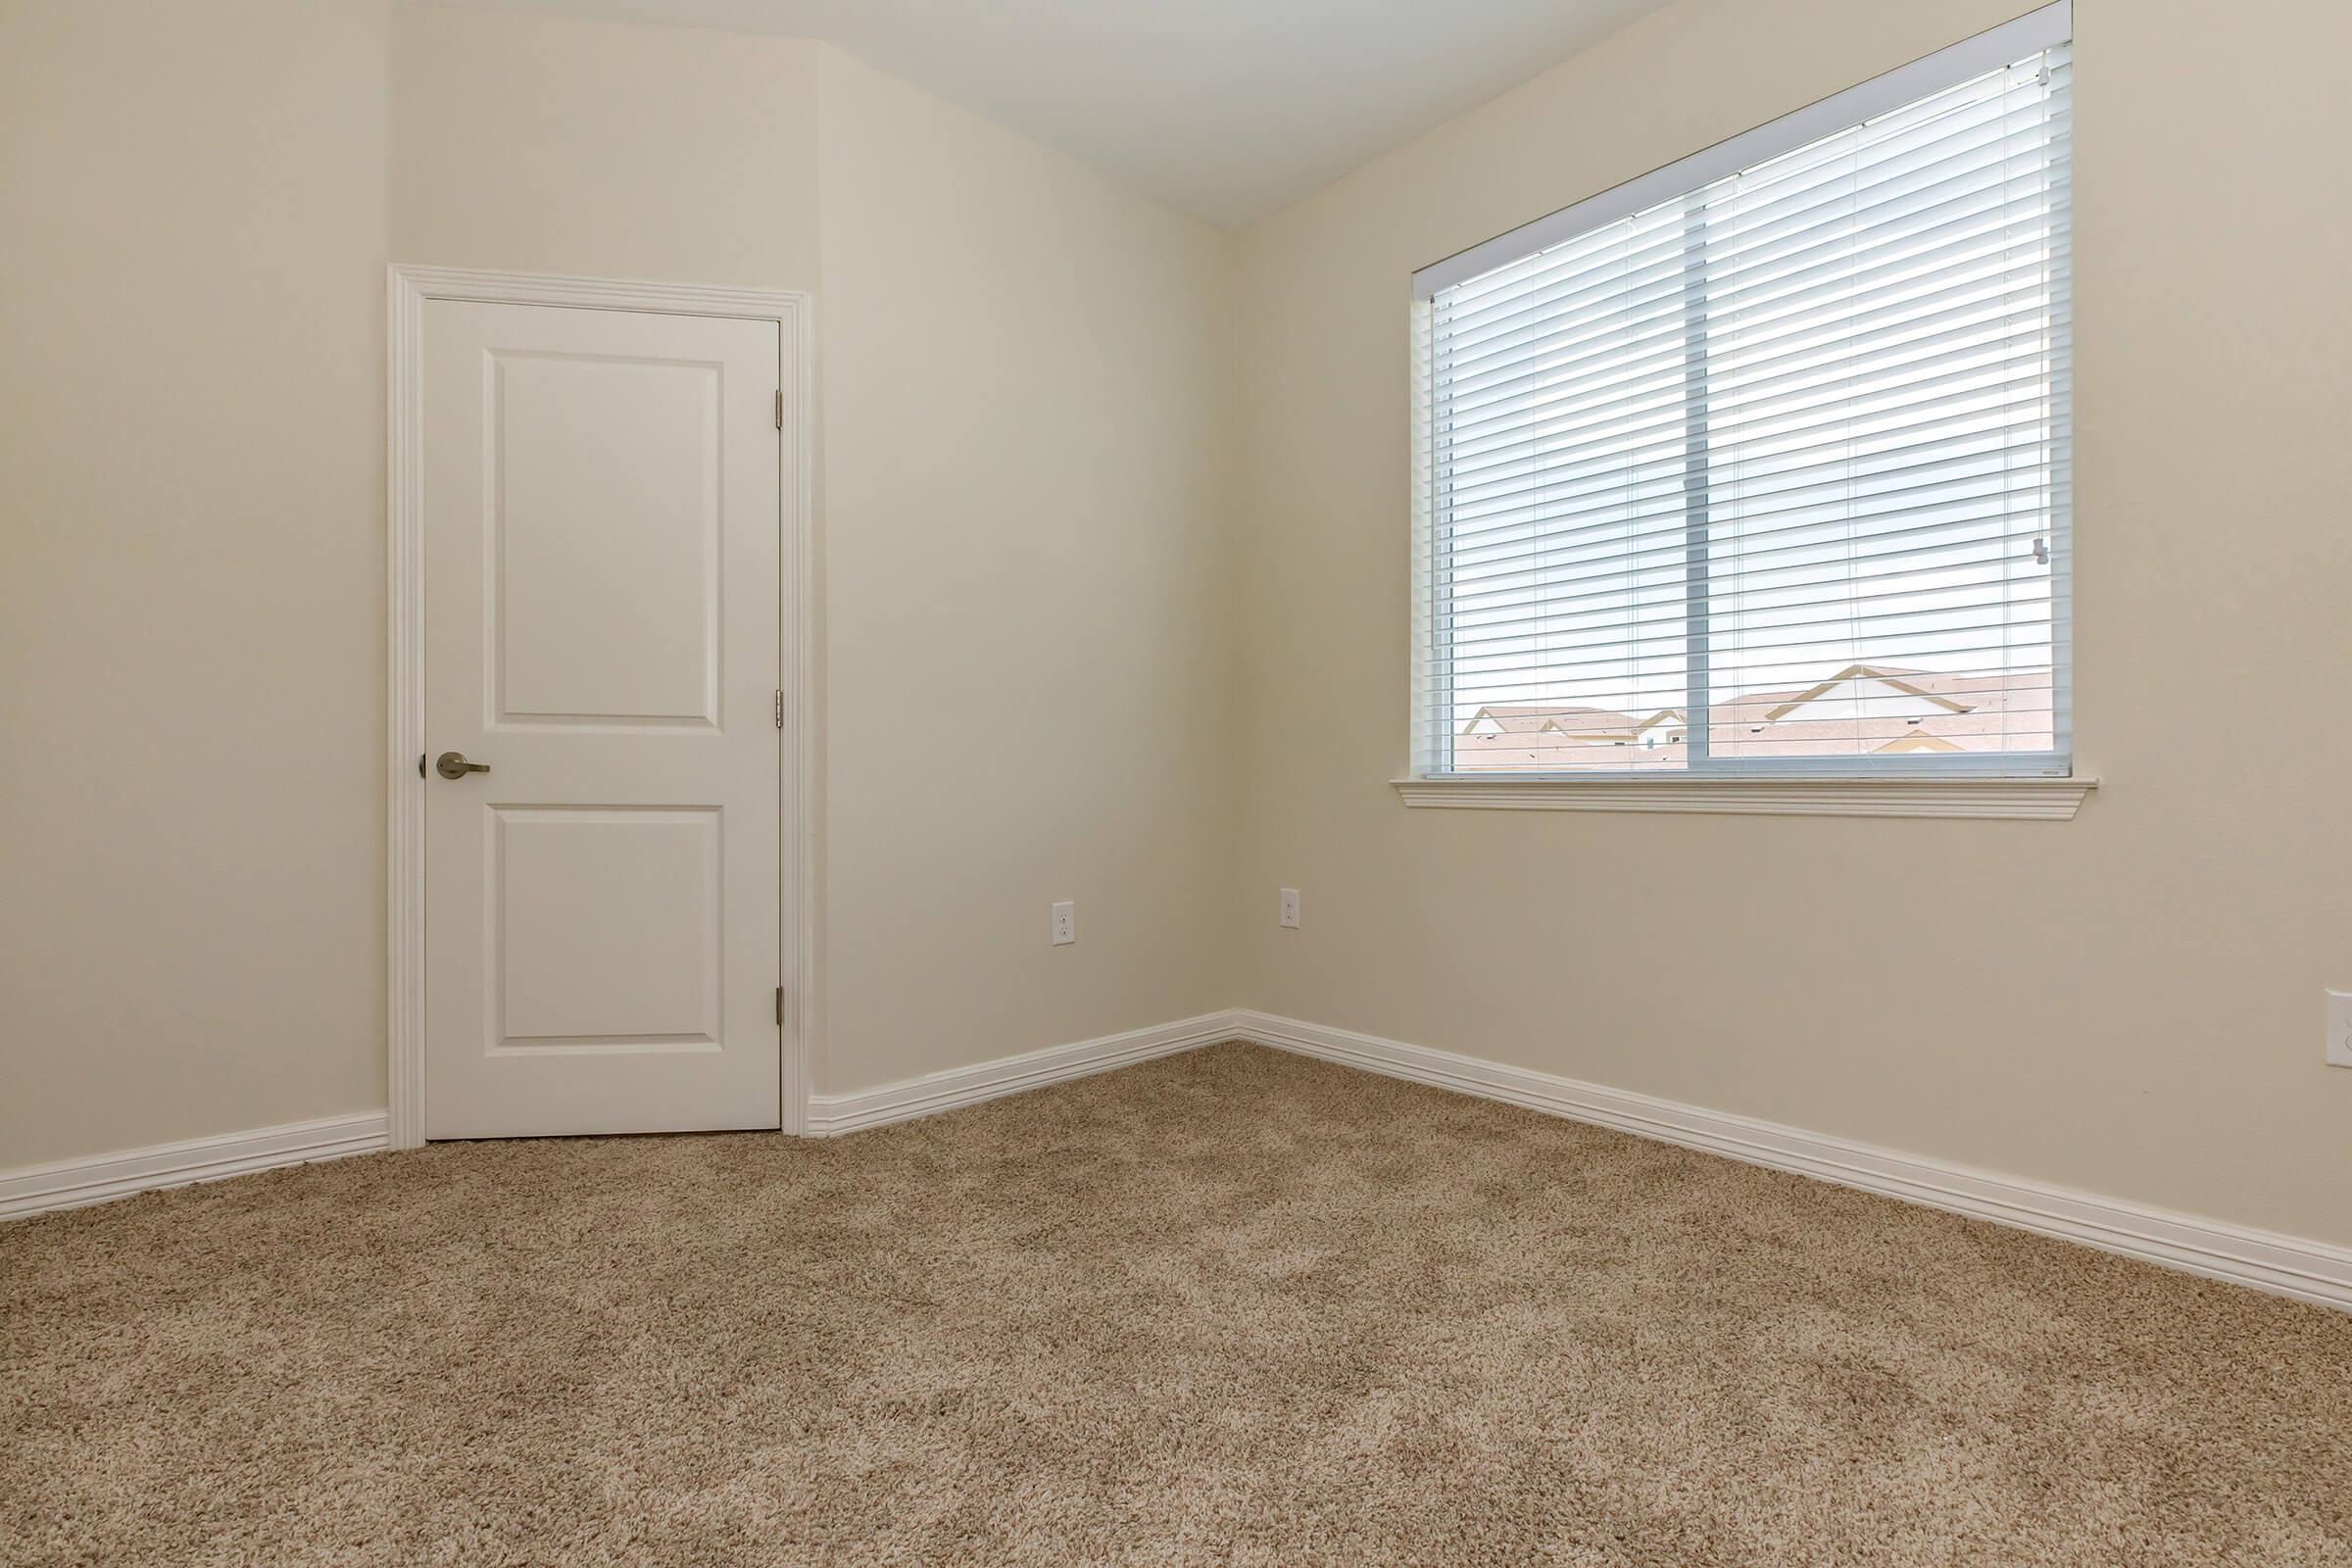 a bedroom with a large window